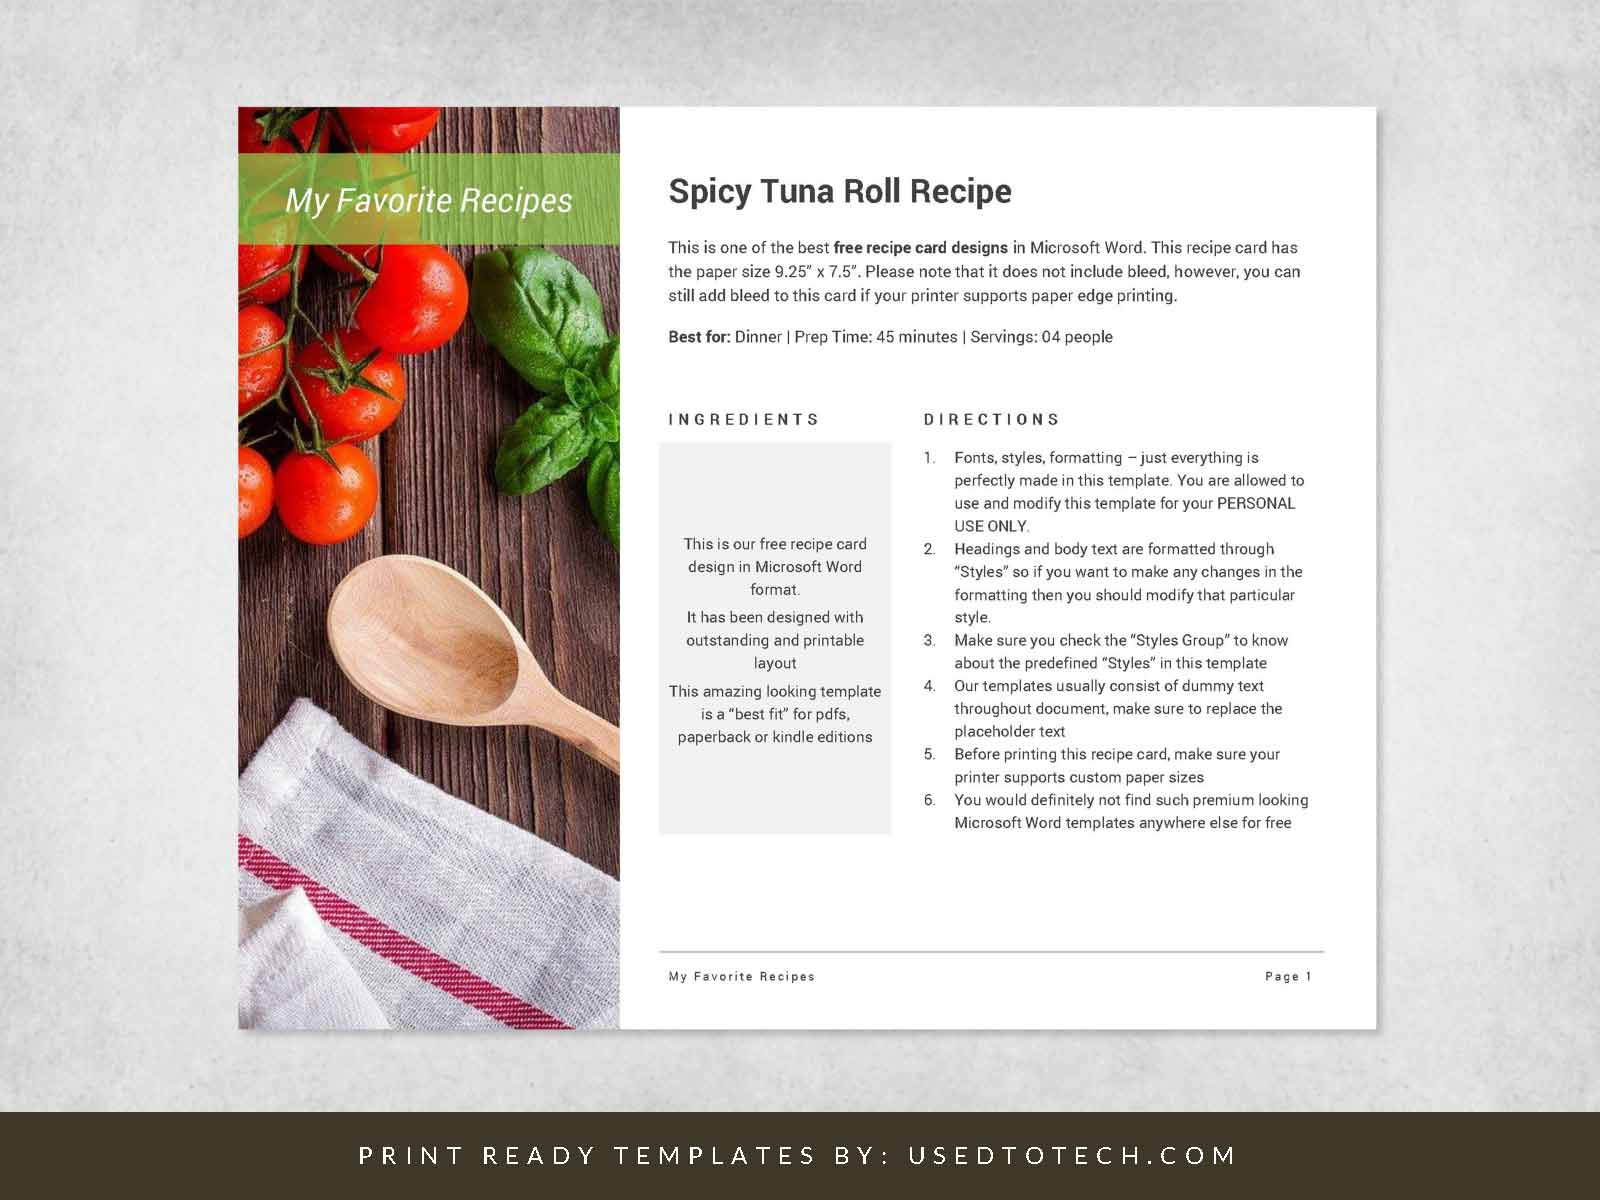 Best Recipe Card For Word With Outstanding Design Used To Tech